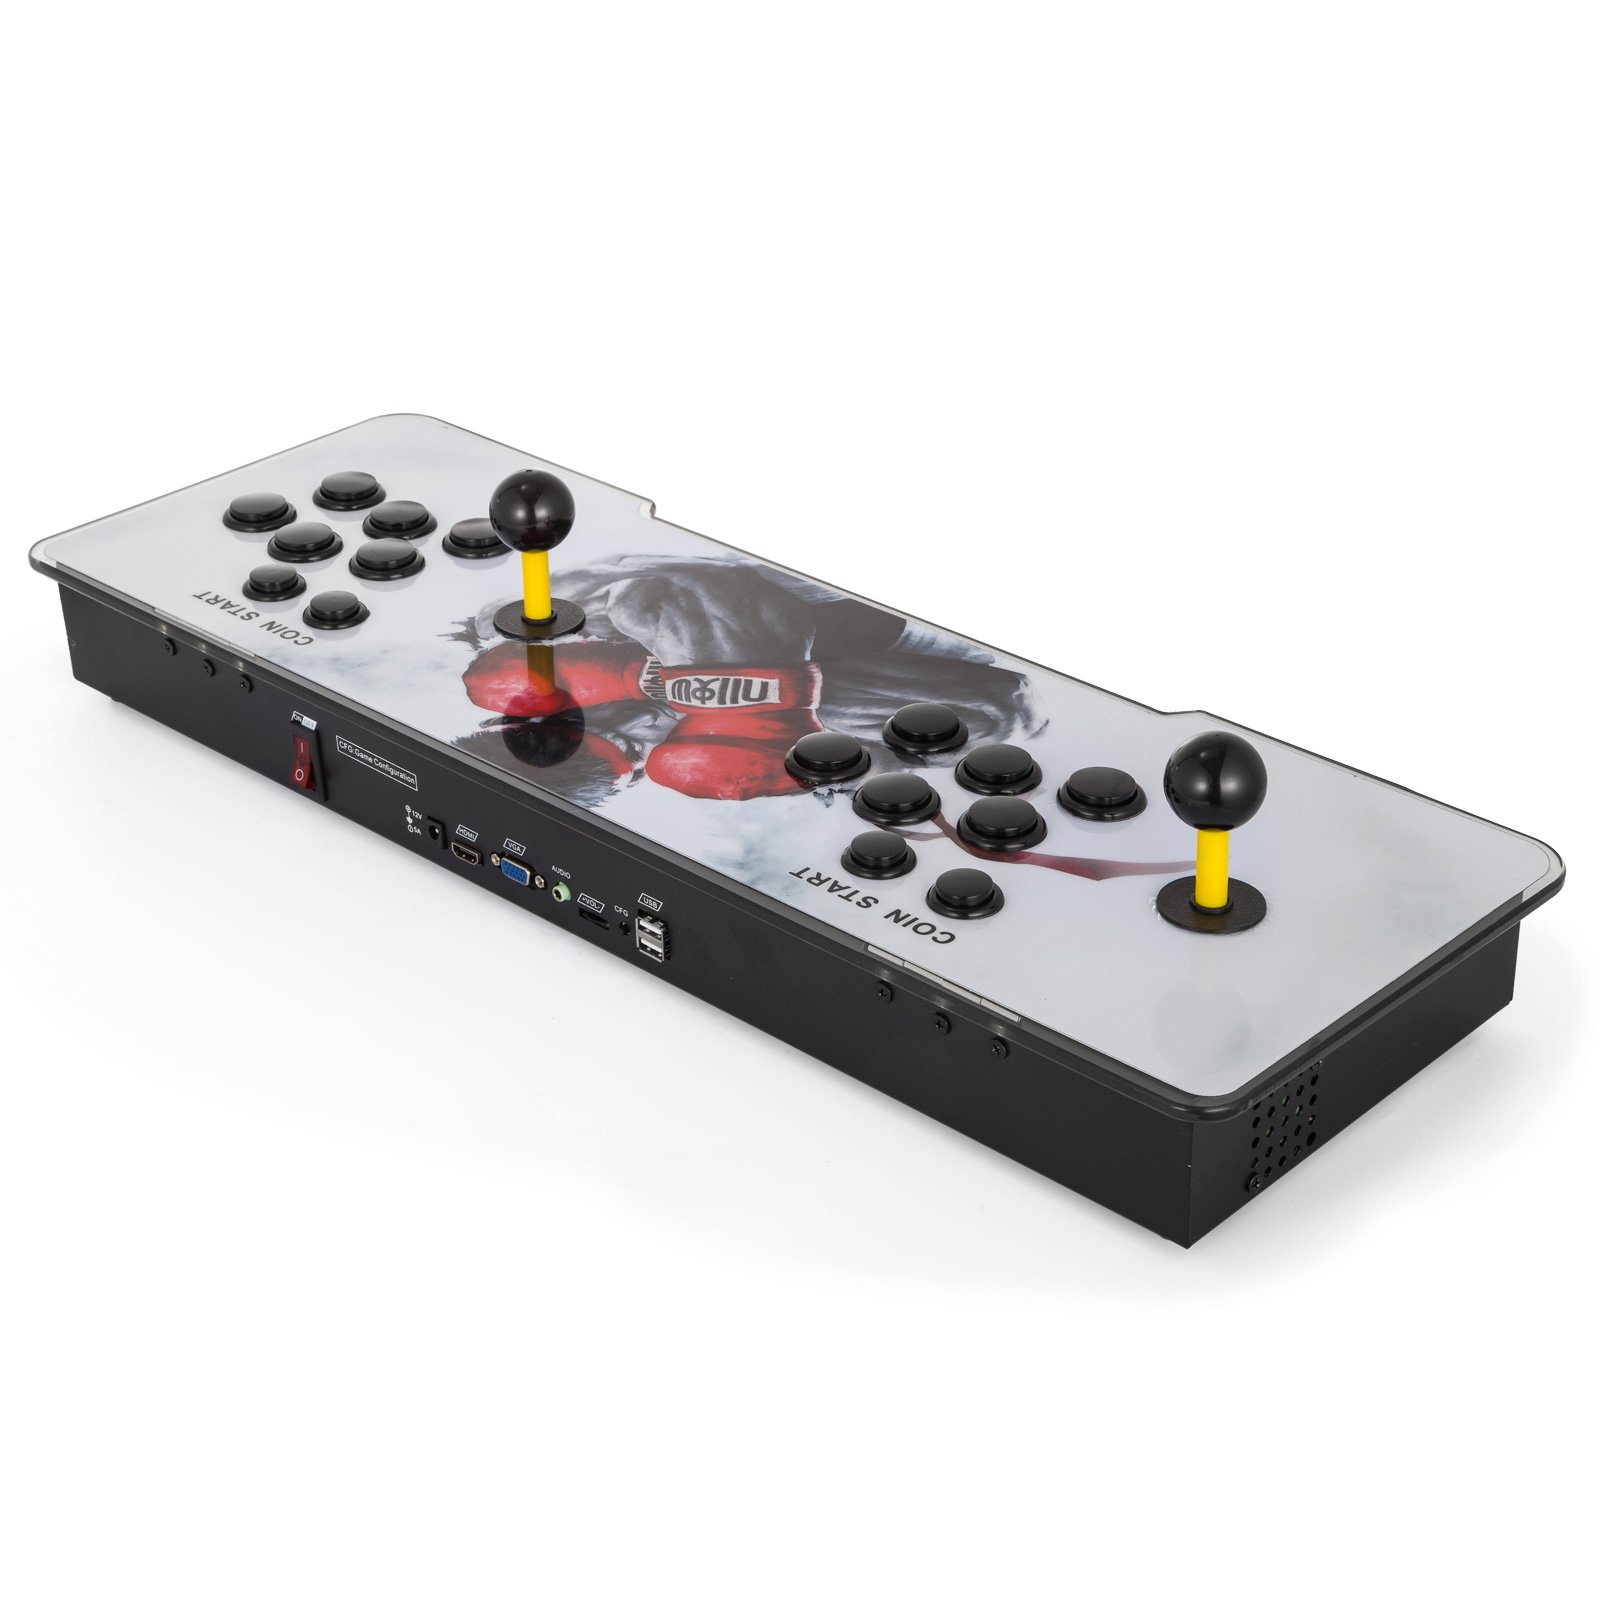 Happybuy Video Game Console, Arcade Machine Over 1500 Latest Classic Games, 2 Players Pandora's Box 9S Multiplayer Home Arcade Console Games All in 1 Non-Jamma PCB Double Stick Newest Design Power HDM by Happybuy (Image #7)